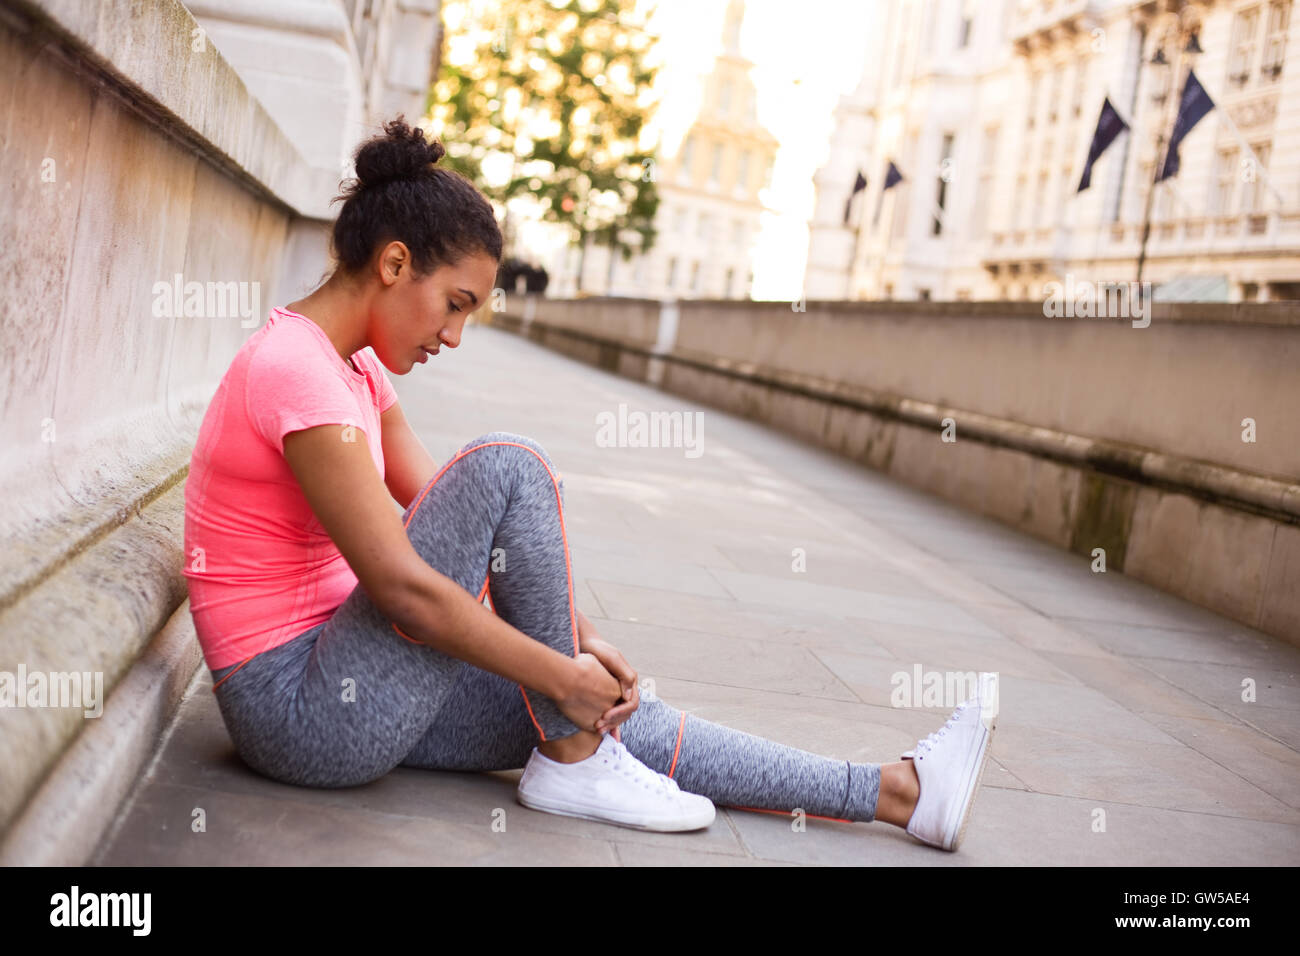 young woman feeling her painful ankle after exercise - Stock Image